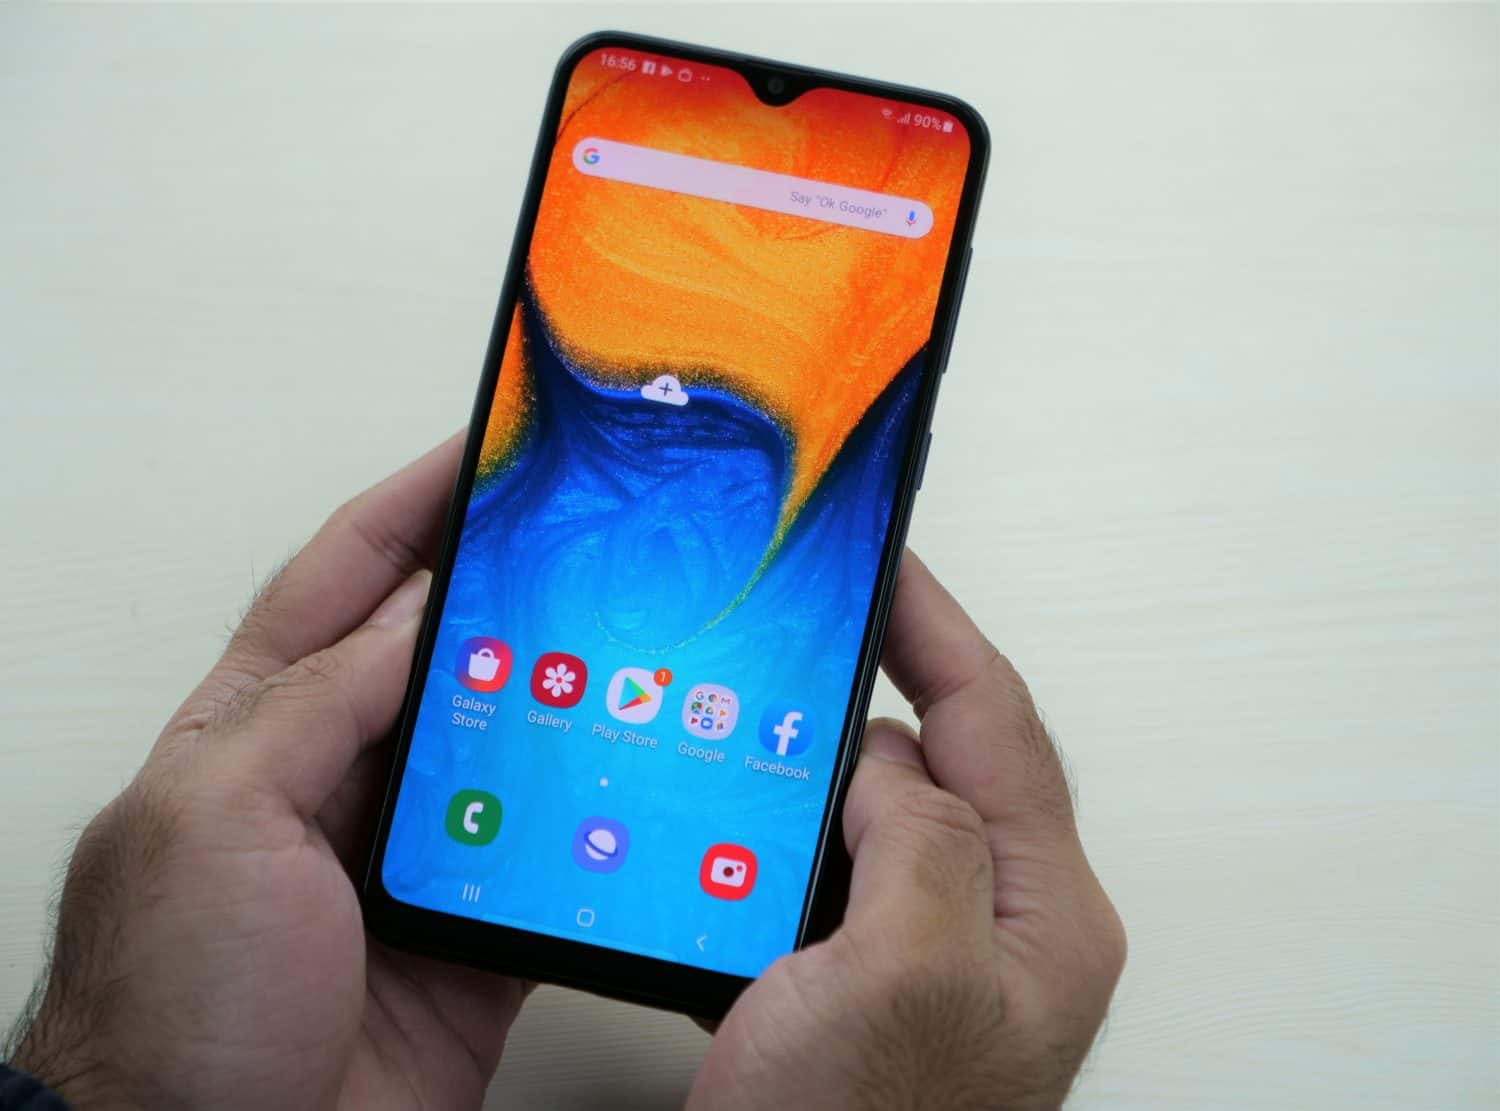 Samsung Galaxy A20's performance, operating system, and user interface